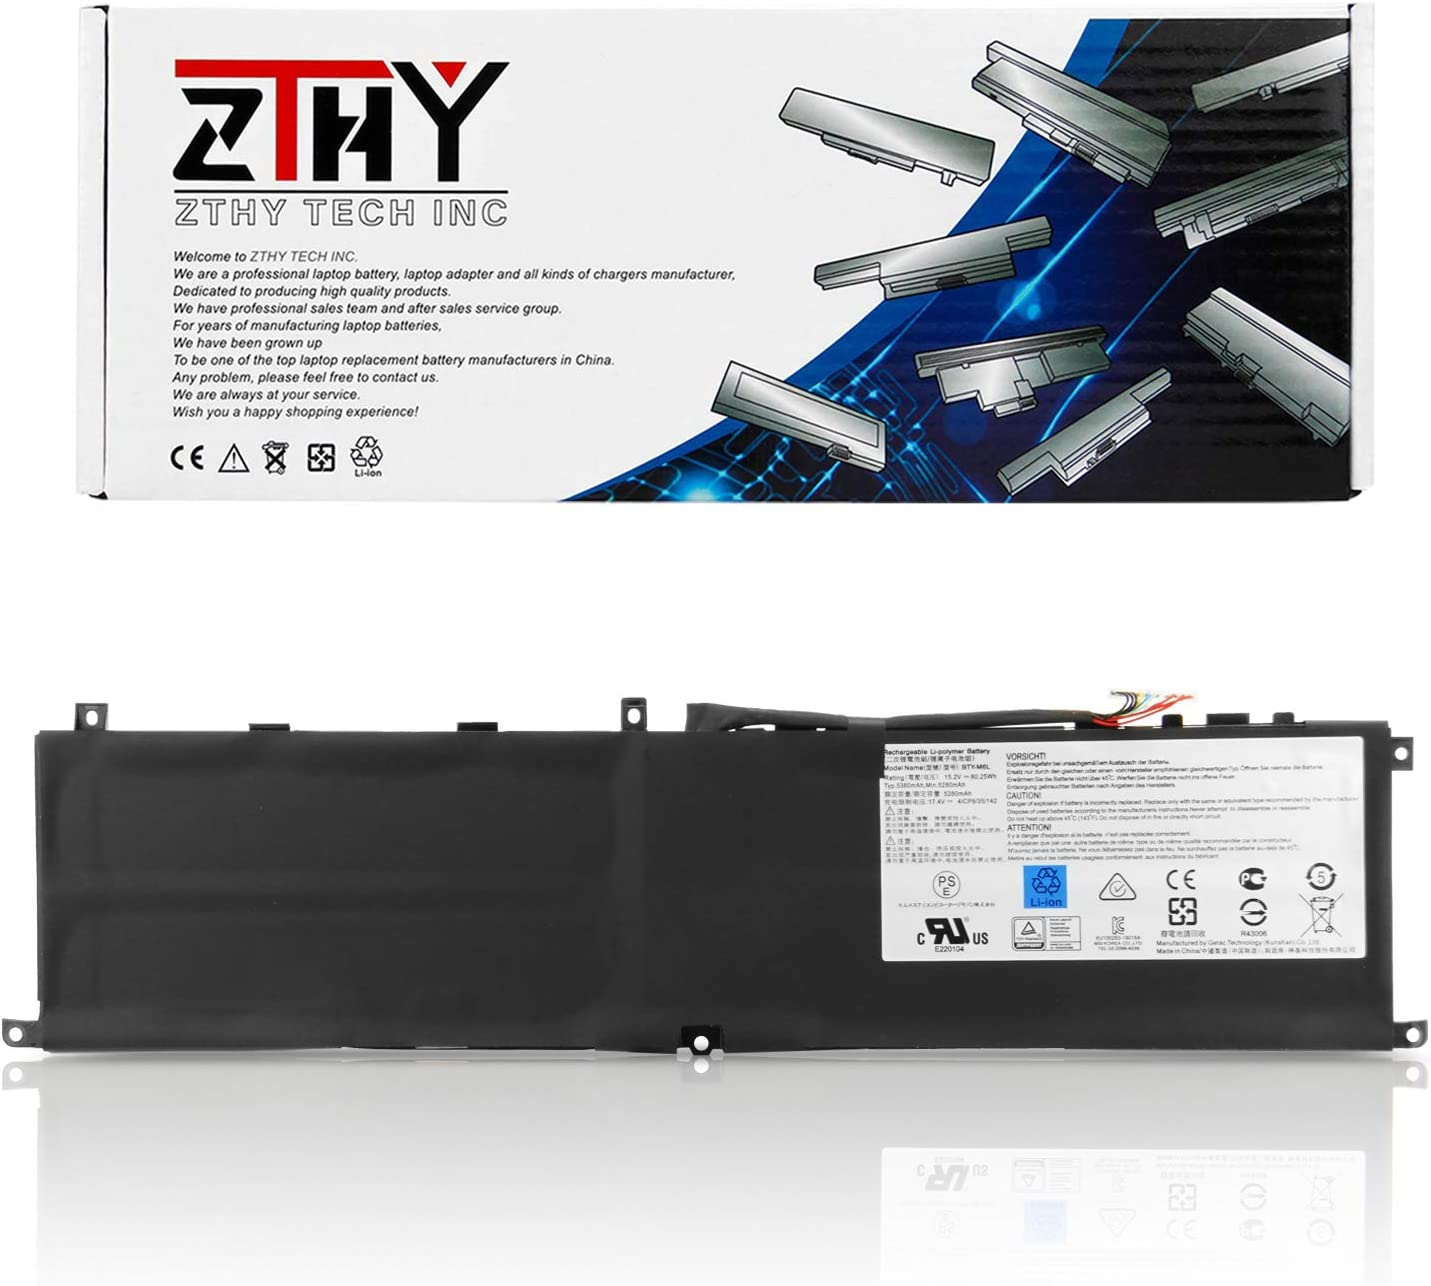 ZTHY New BTY-M6L Battery Replacement for MSI GS65 Stealth Thin 8RF 8RE 9RE PS42 8RB P65 Creator 8RD 8RE MS-16Q2 MS-16Q3 PS63 Modern 8RC GS75 8SG Series Laptop 15.2V 5380mAh 80.25Wh